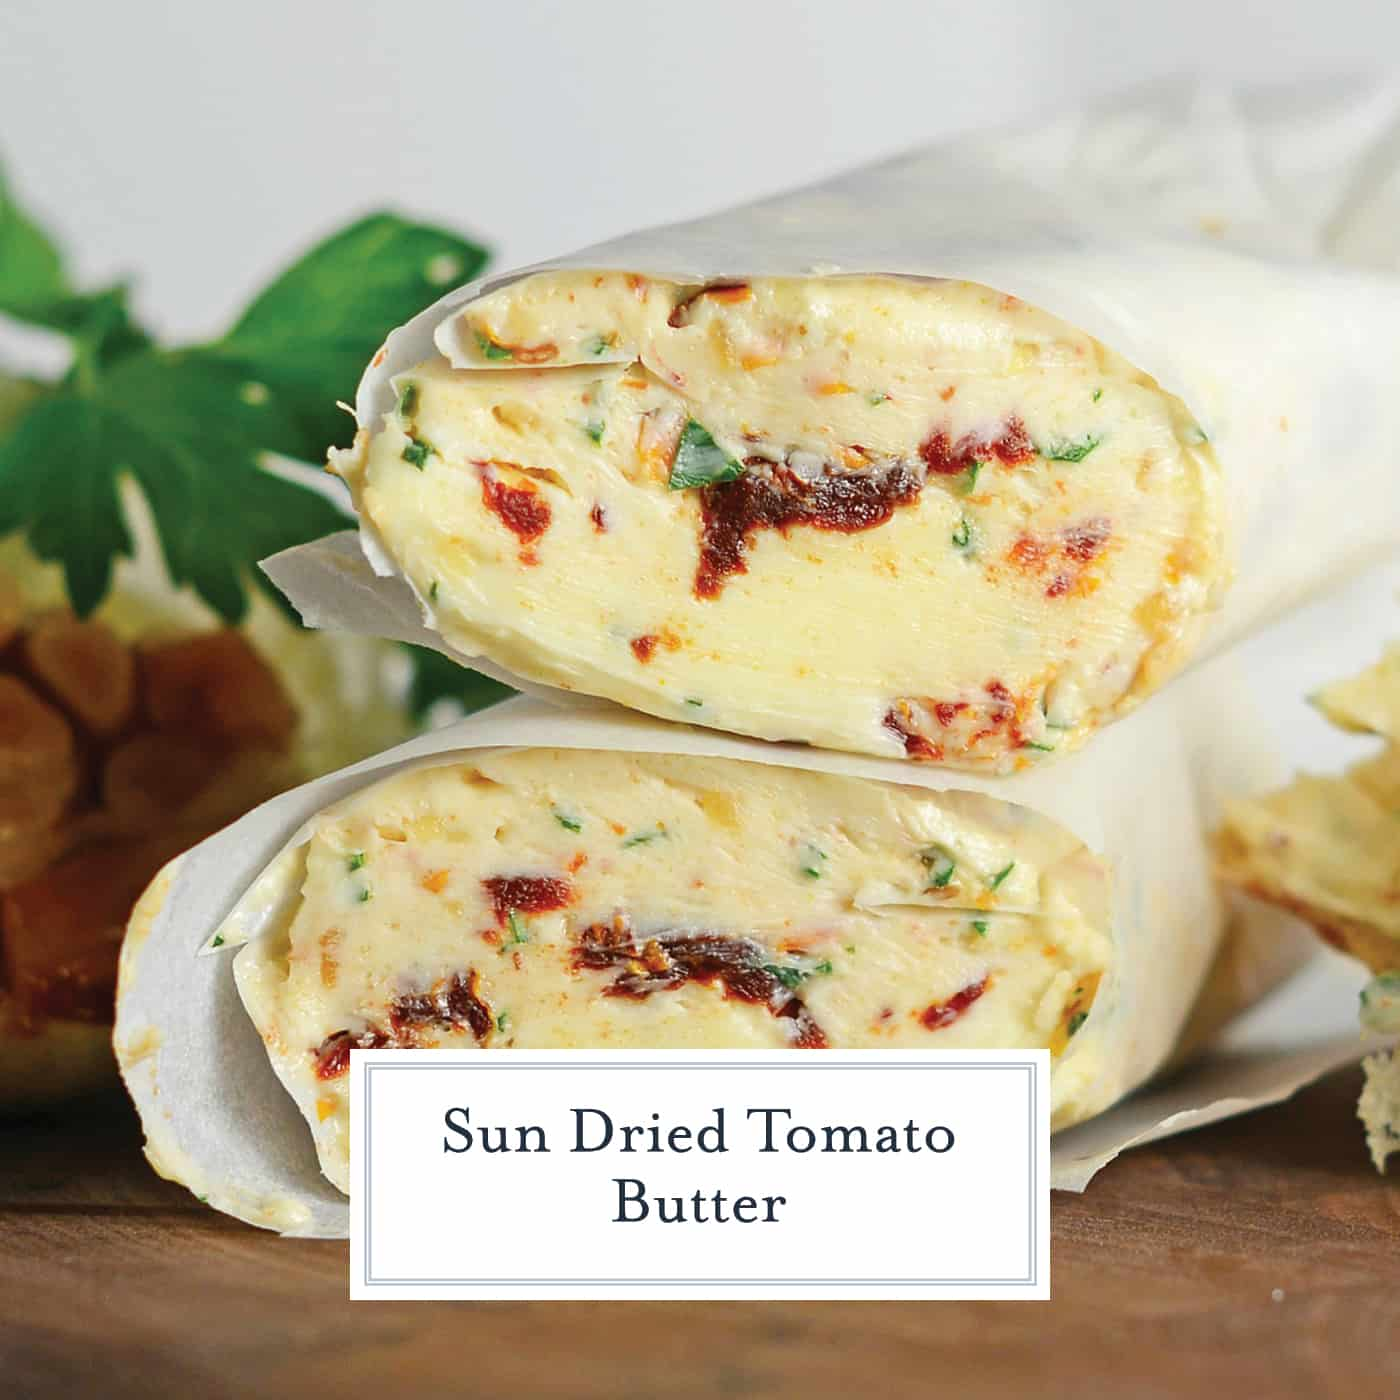 Sun Dried Tomato Butter is a flavored butter recipe made with tart sun dried tomatoes, roasted garlic and parsley. The perfect butter for Garlic Bread! #sundriedtomato #compoundbutter www.savoryexperiments.com